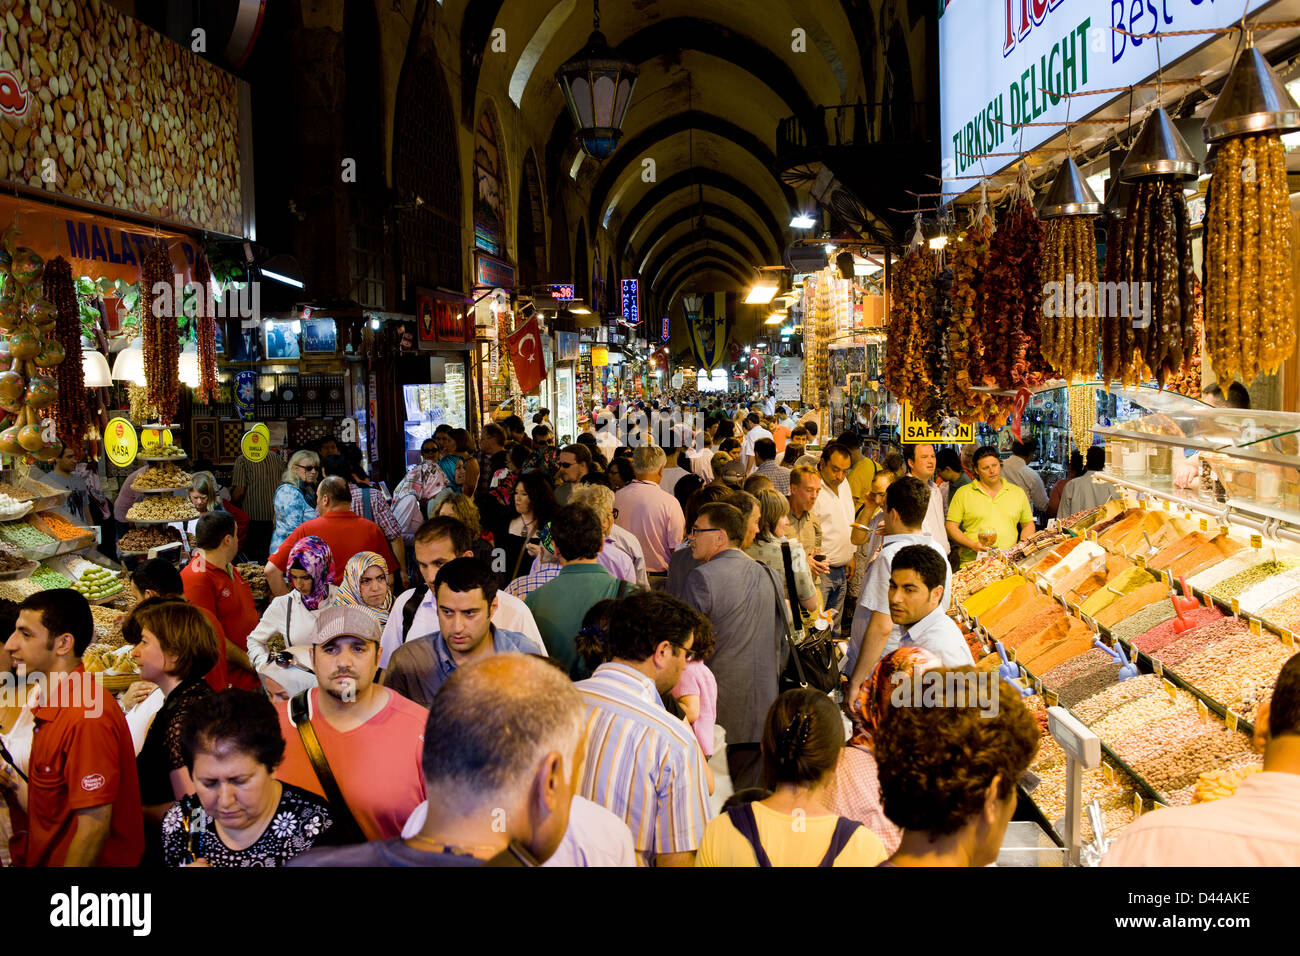 Egyptian Bazaar (Spice Market) crowded with people in Istanbul, Turkey. - Stock Image